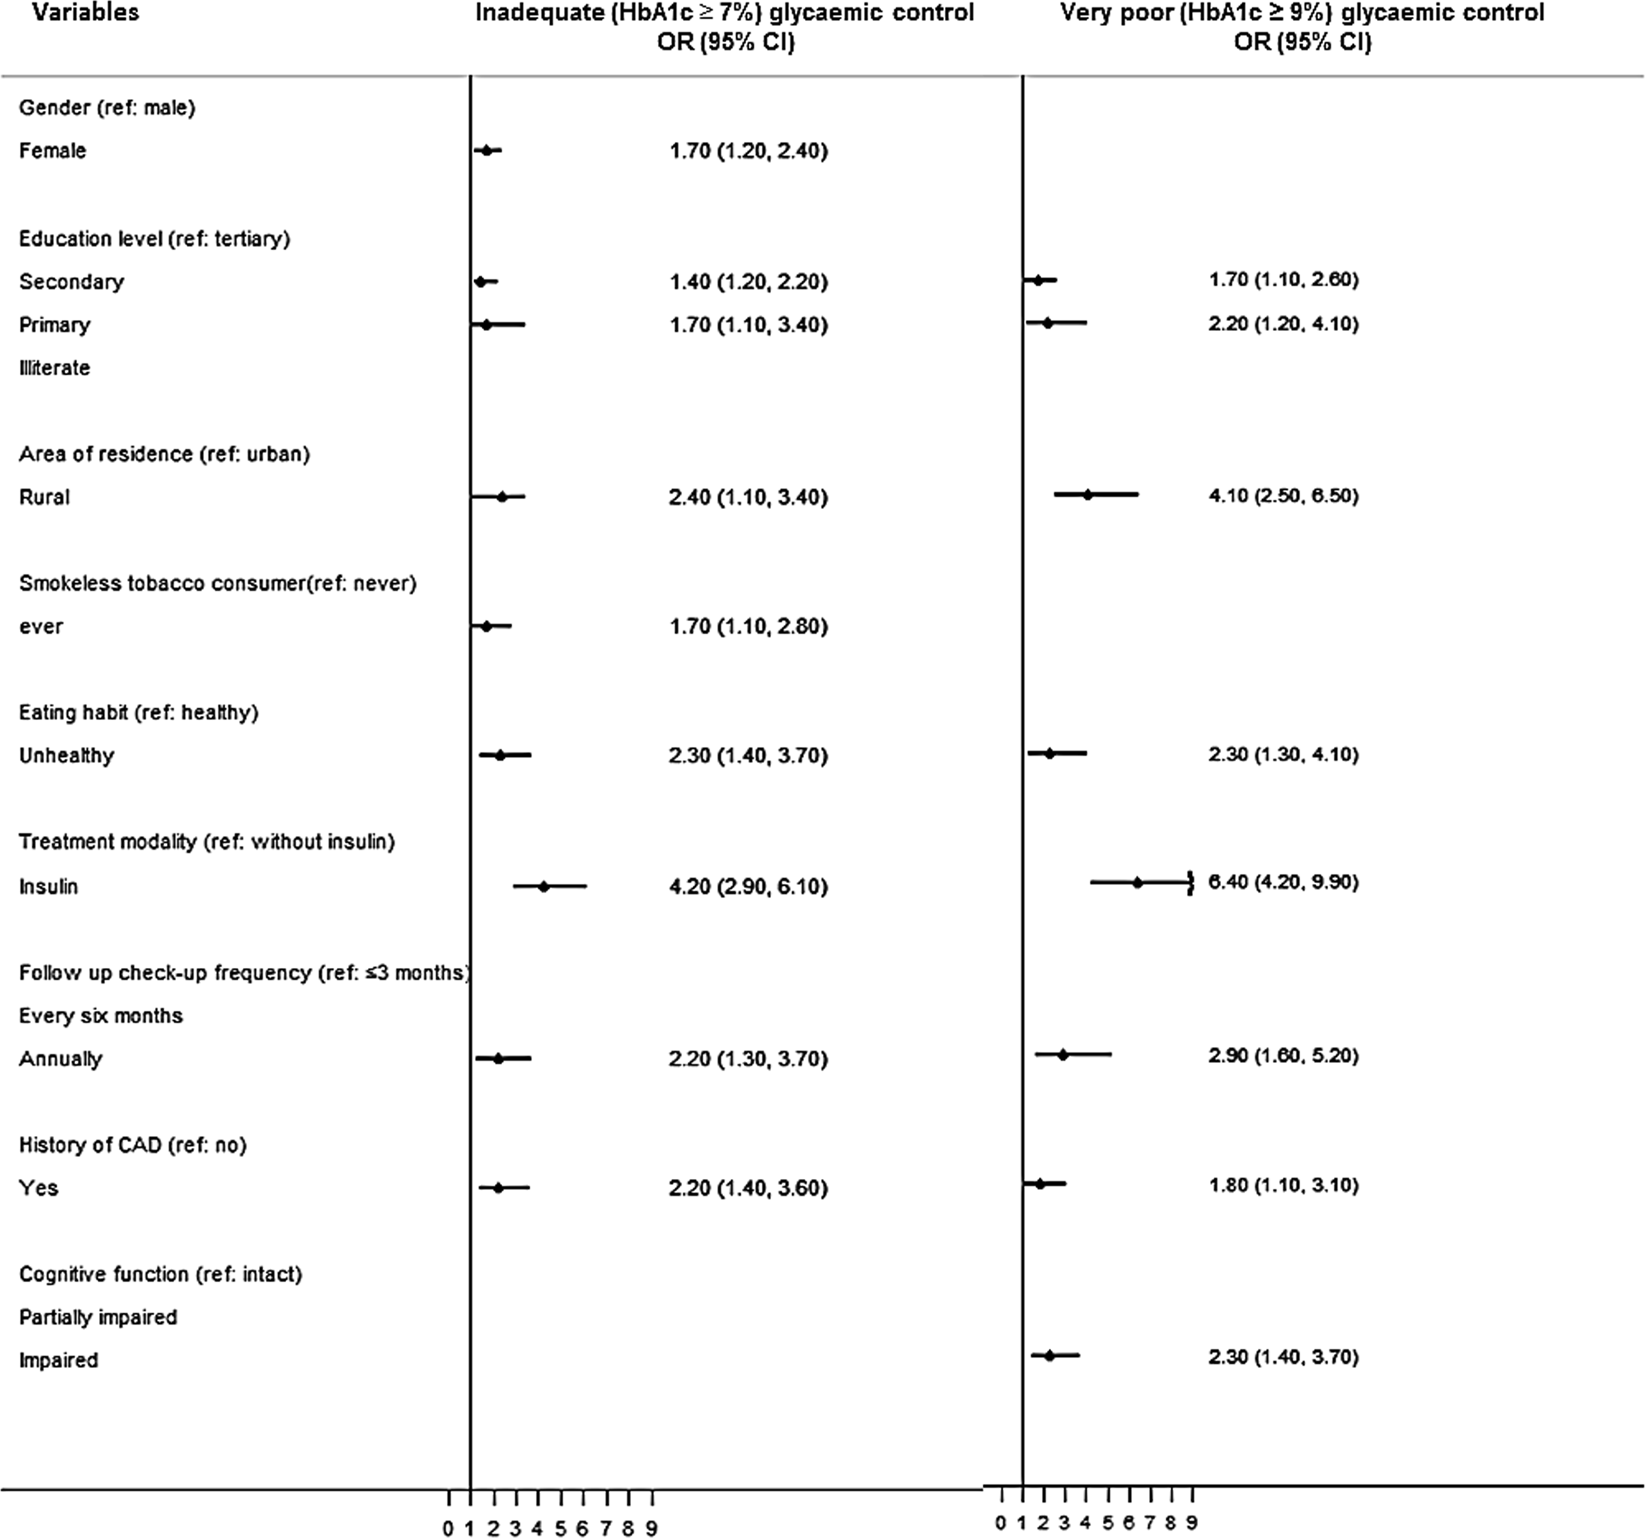 Glycaemic Control For People With Type 2 Diabetes Mellitus In